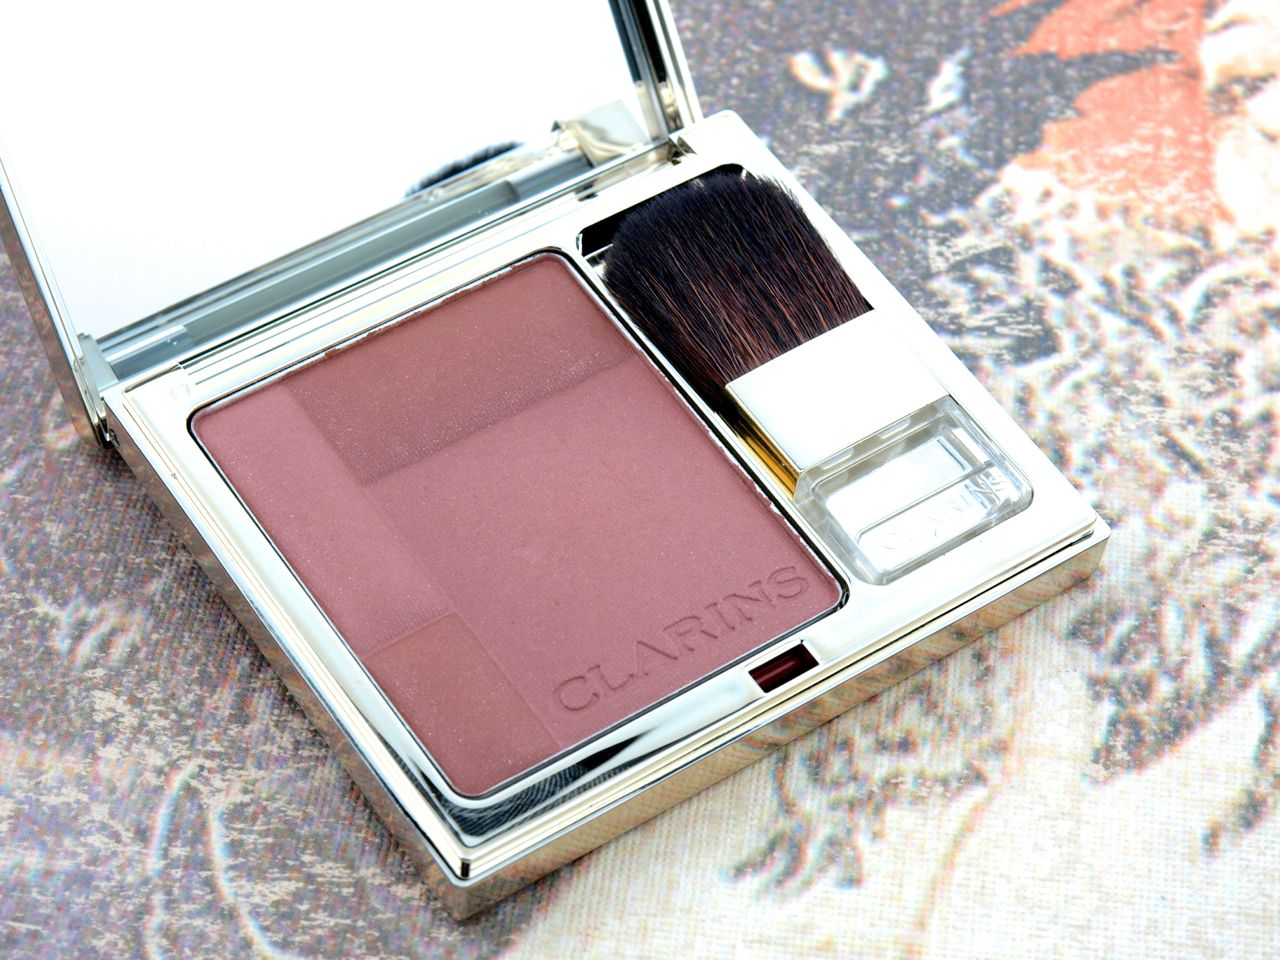 Clarins Fall 2014 Ladylike Collection: Review and Swatches